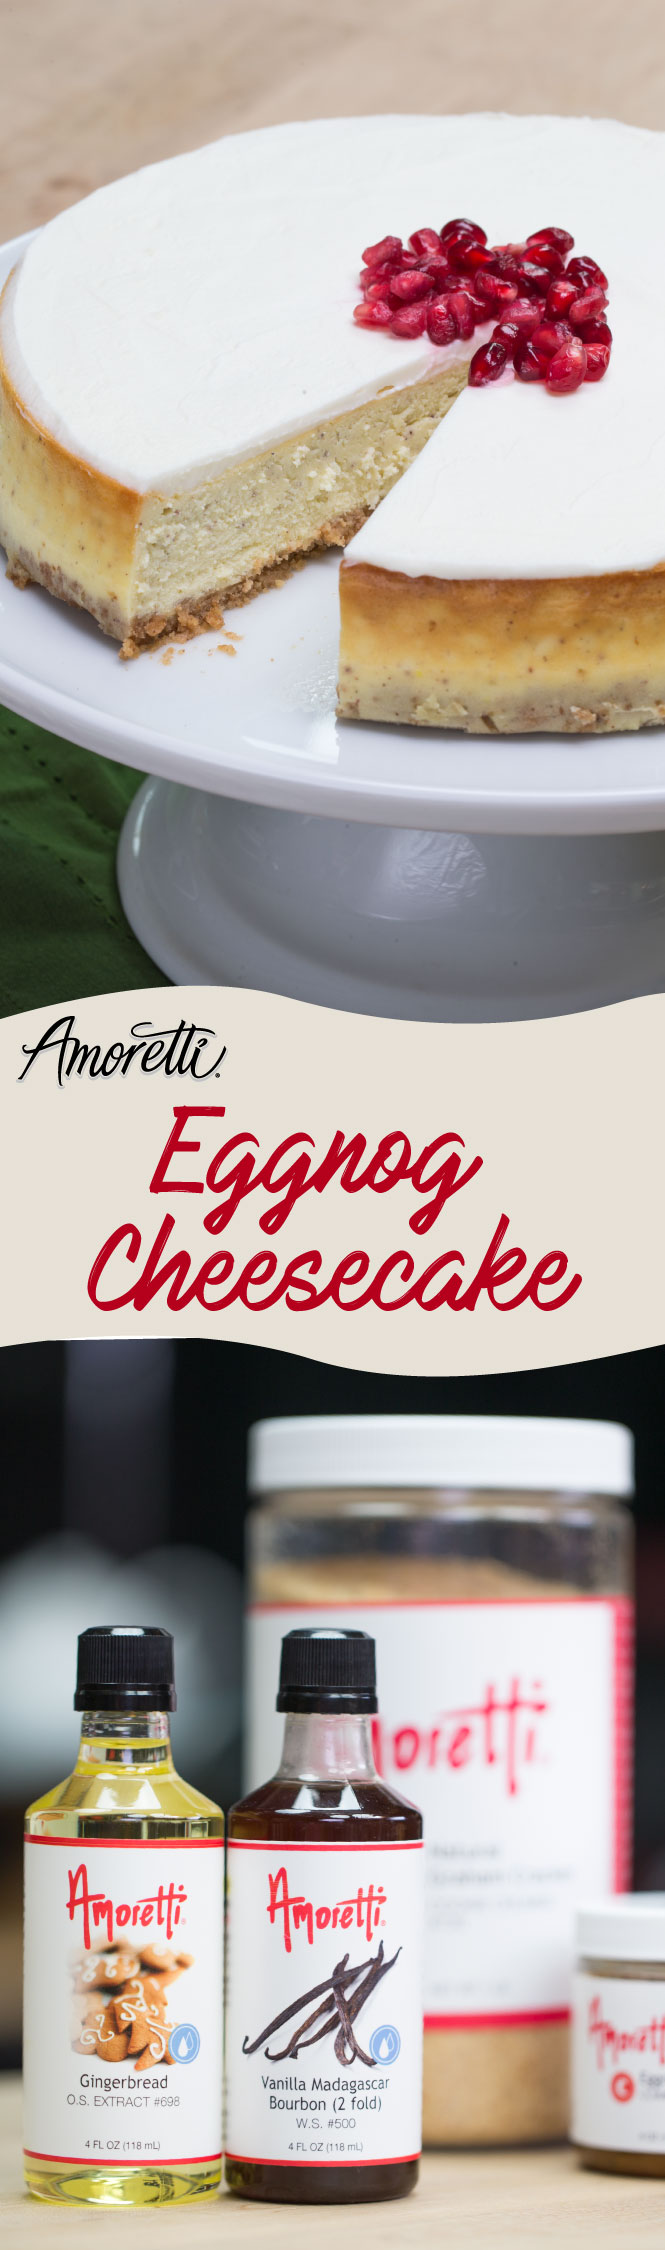 The holidays are here and it's the most wonderful time of the year to make some eggnog cheesecake!